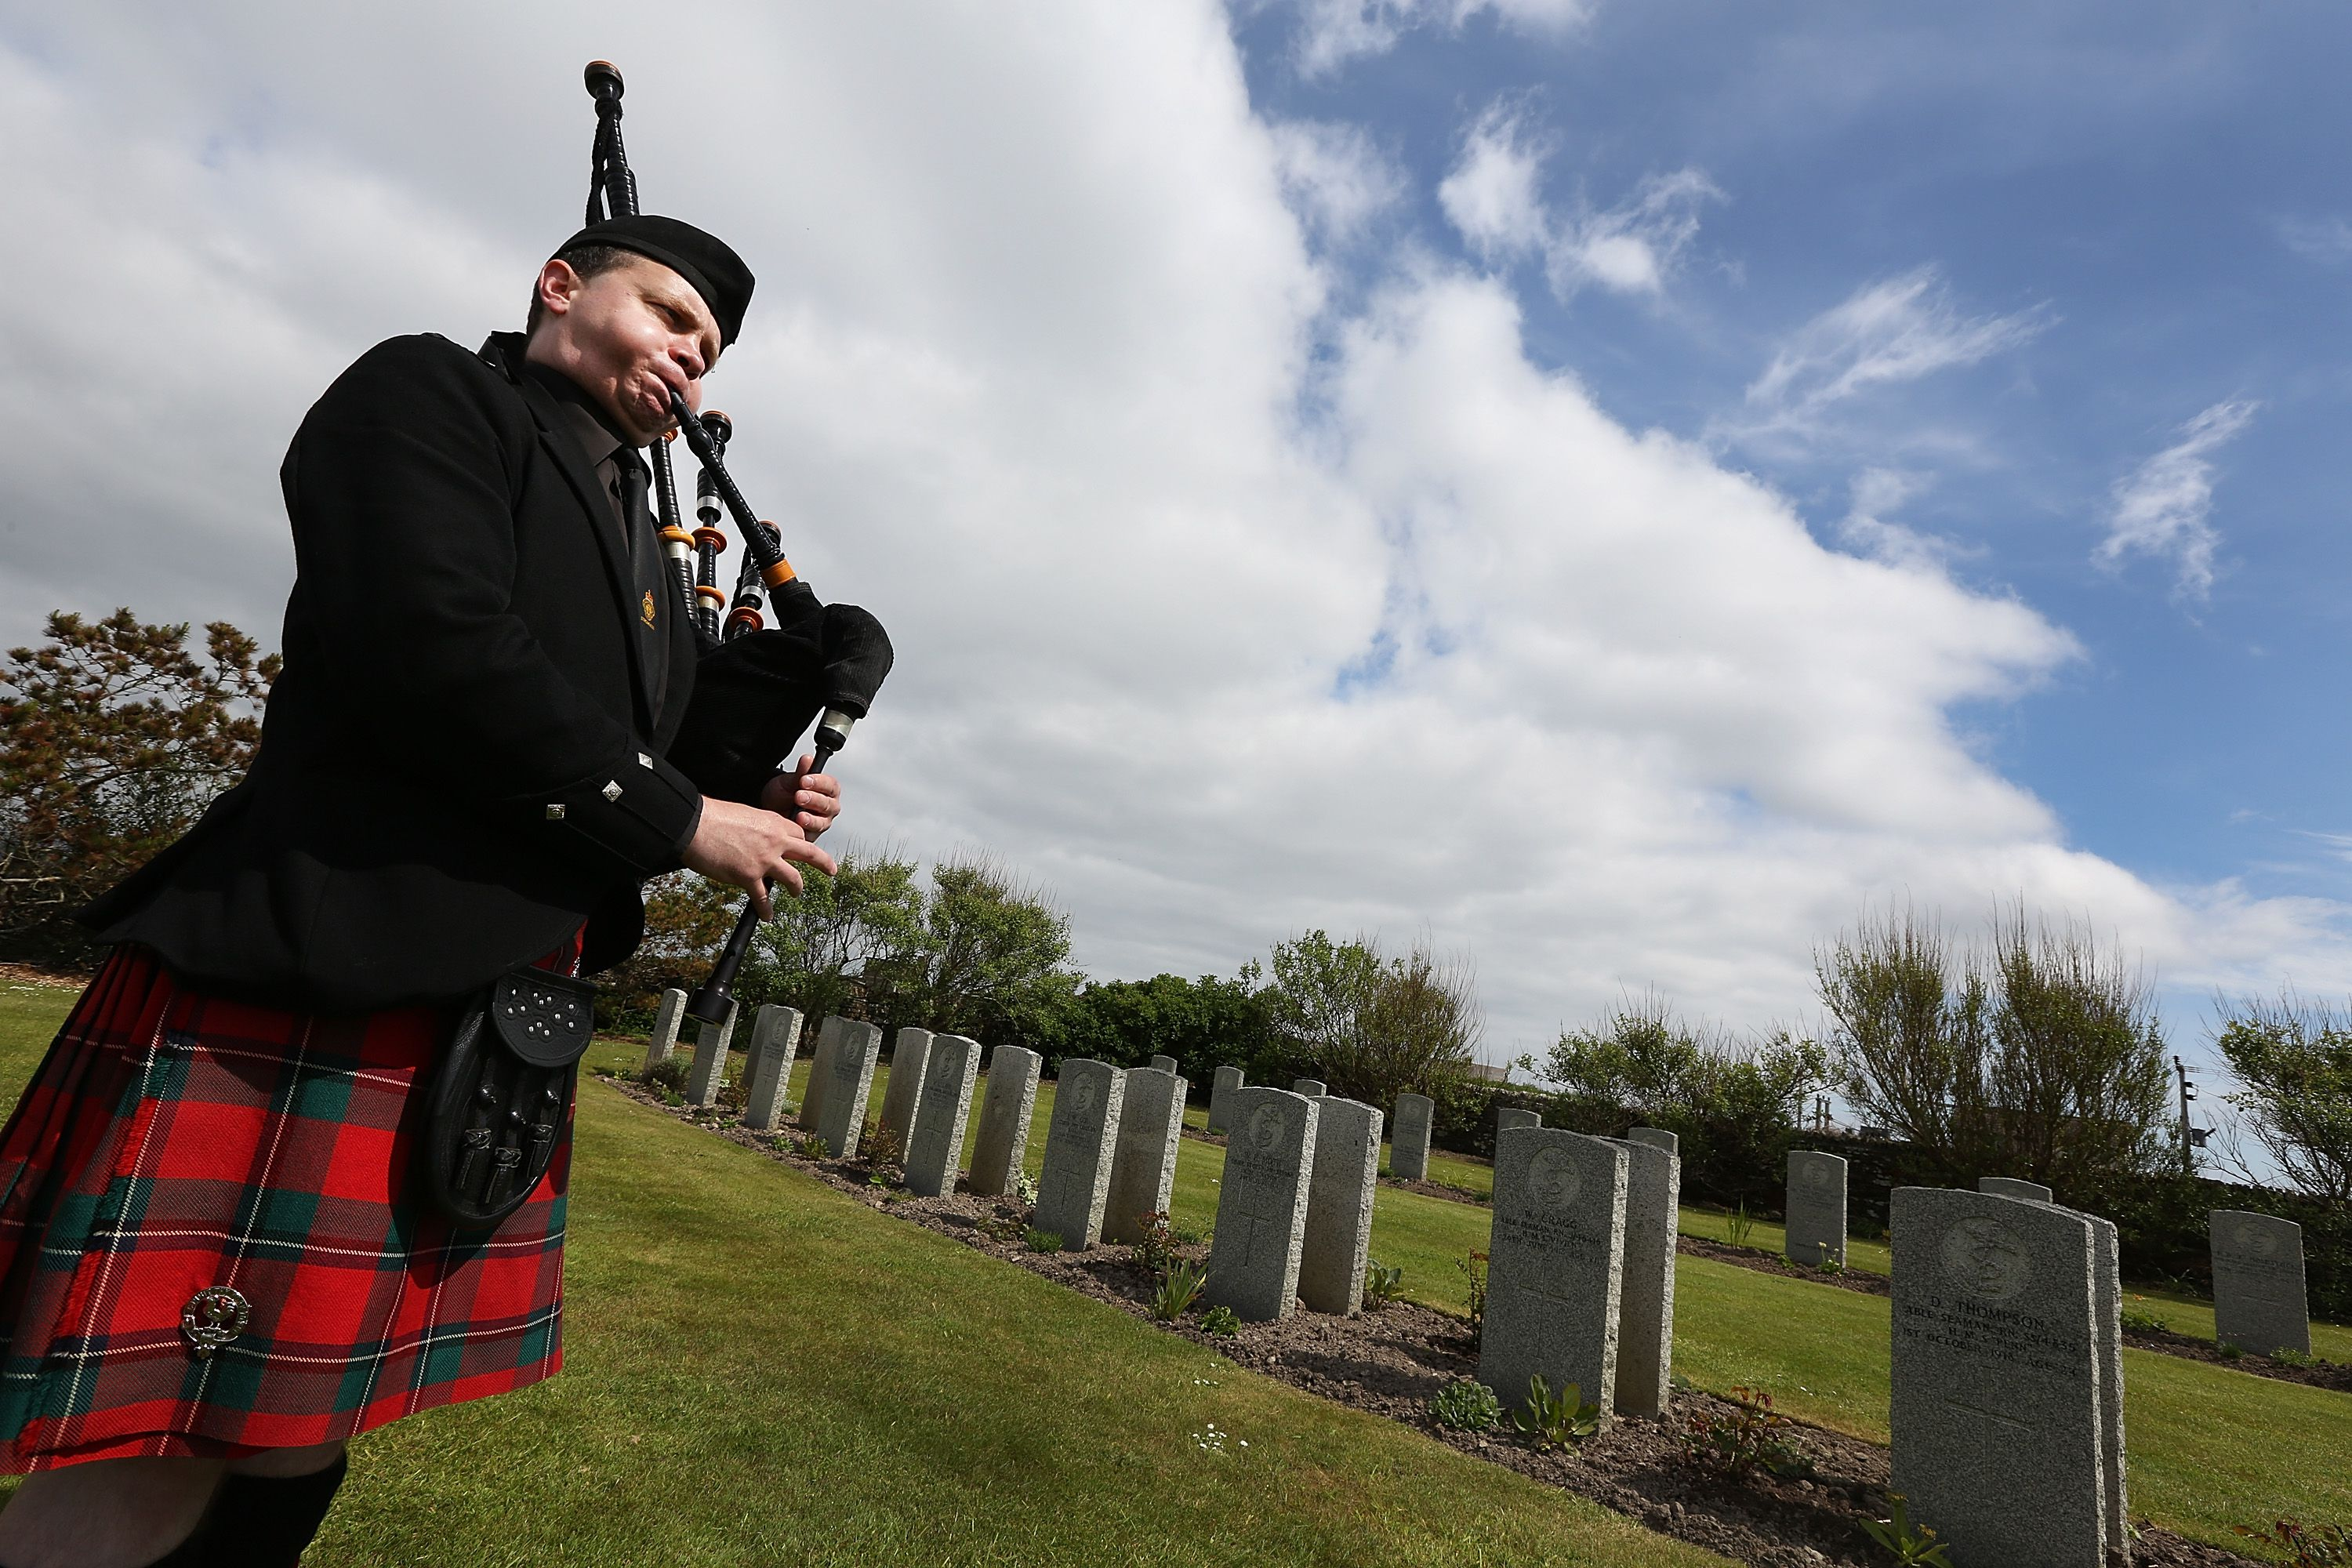 Why Bagpipes Are Played at Funerals